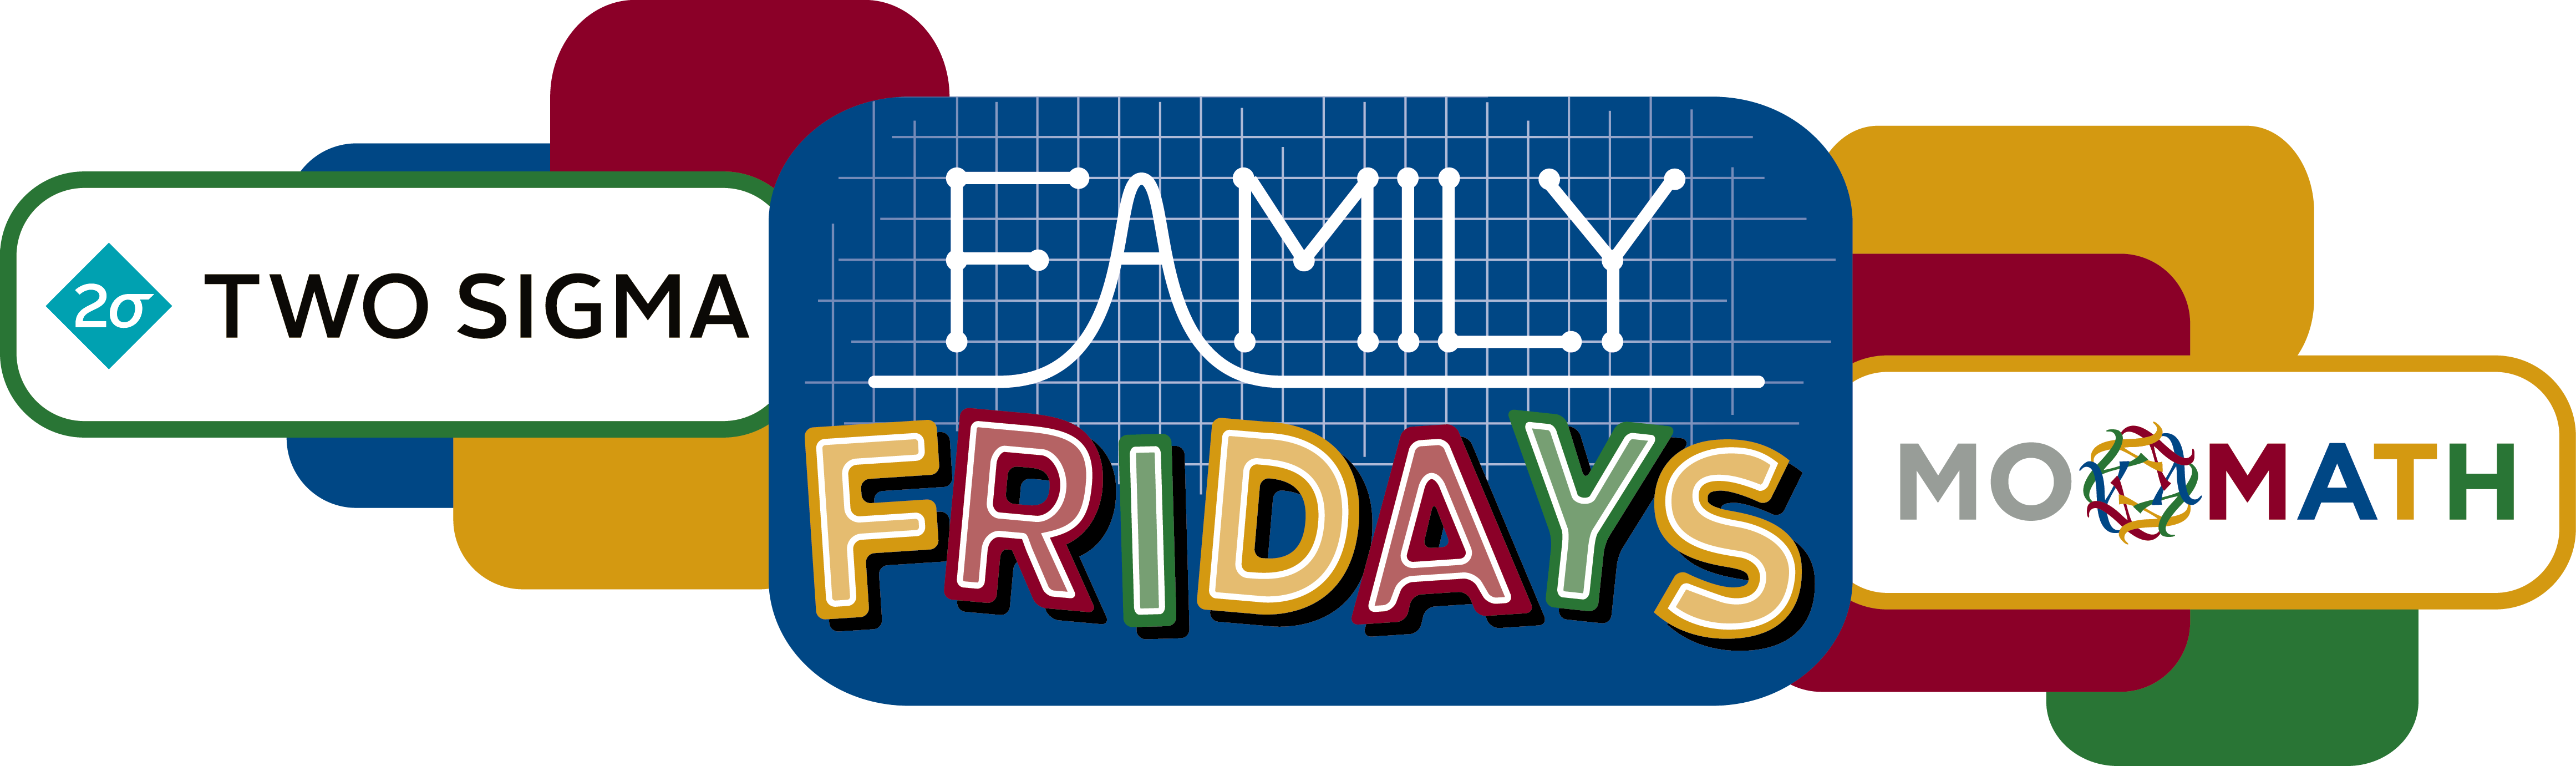 Transparent family fun night clipart - The Activities Are Designed So That All Attendees, - Graphic Design